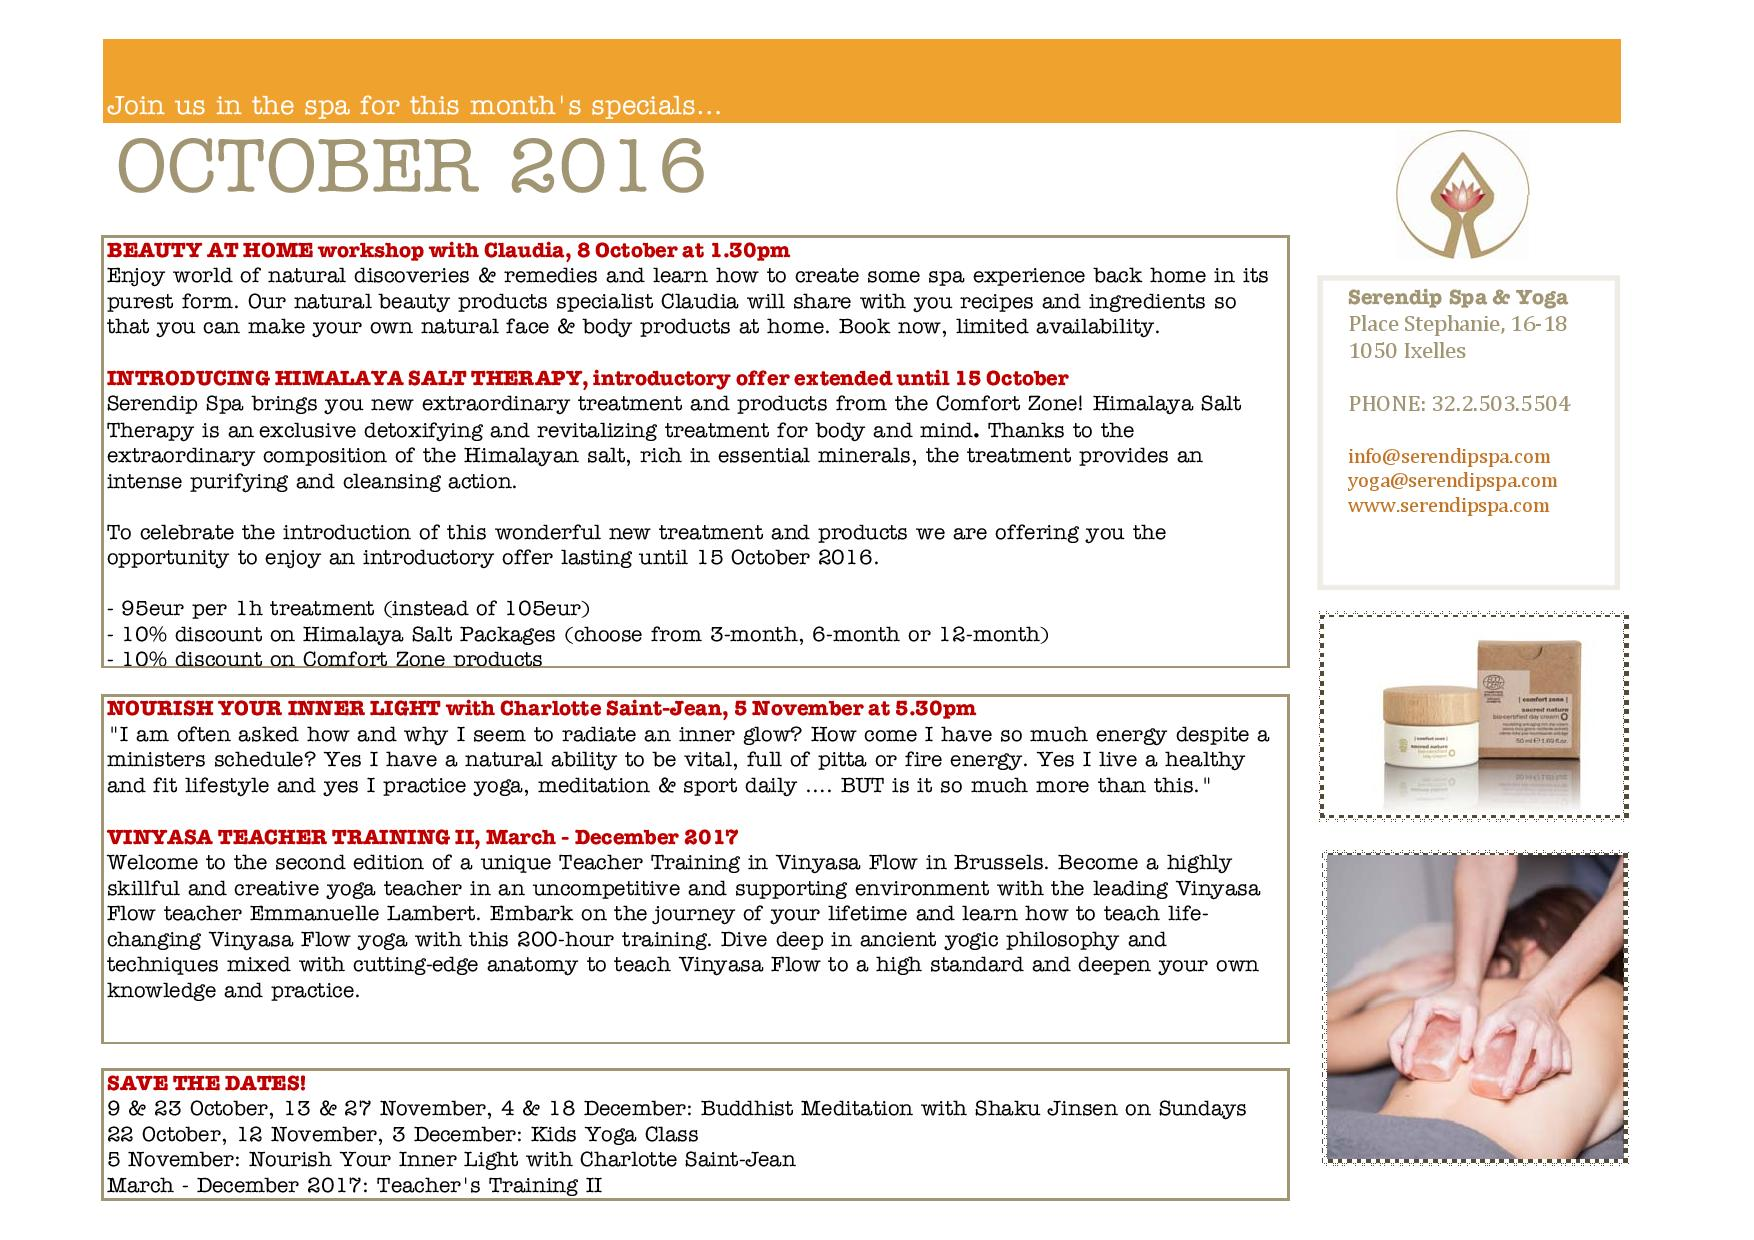 Serendip Spa and Yoga Calendar 2016_October_BACK A4-page-001.jpg